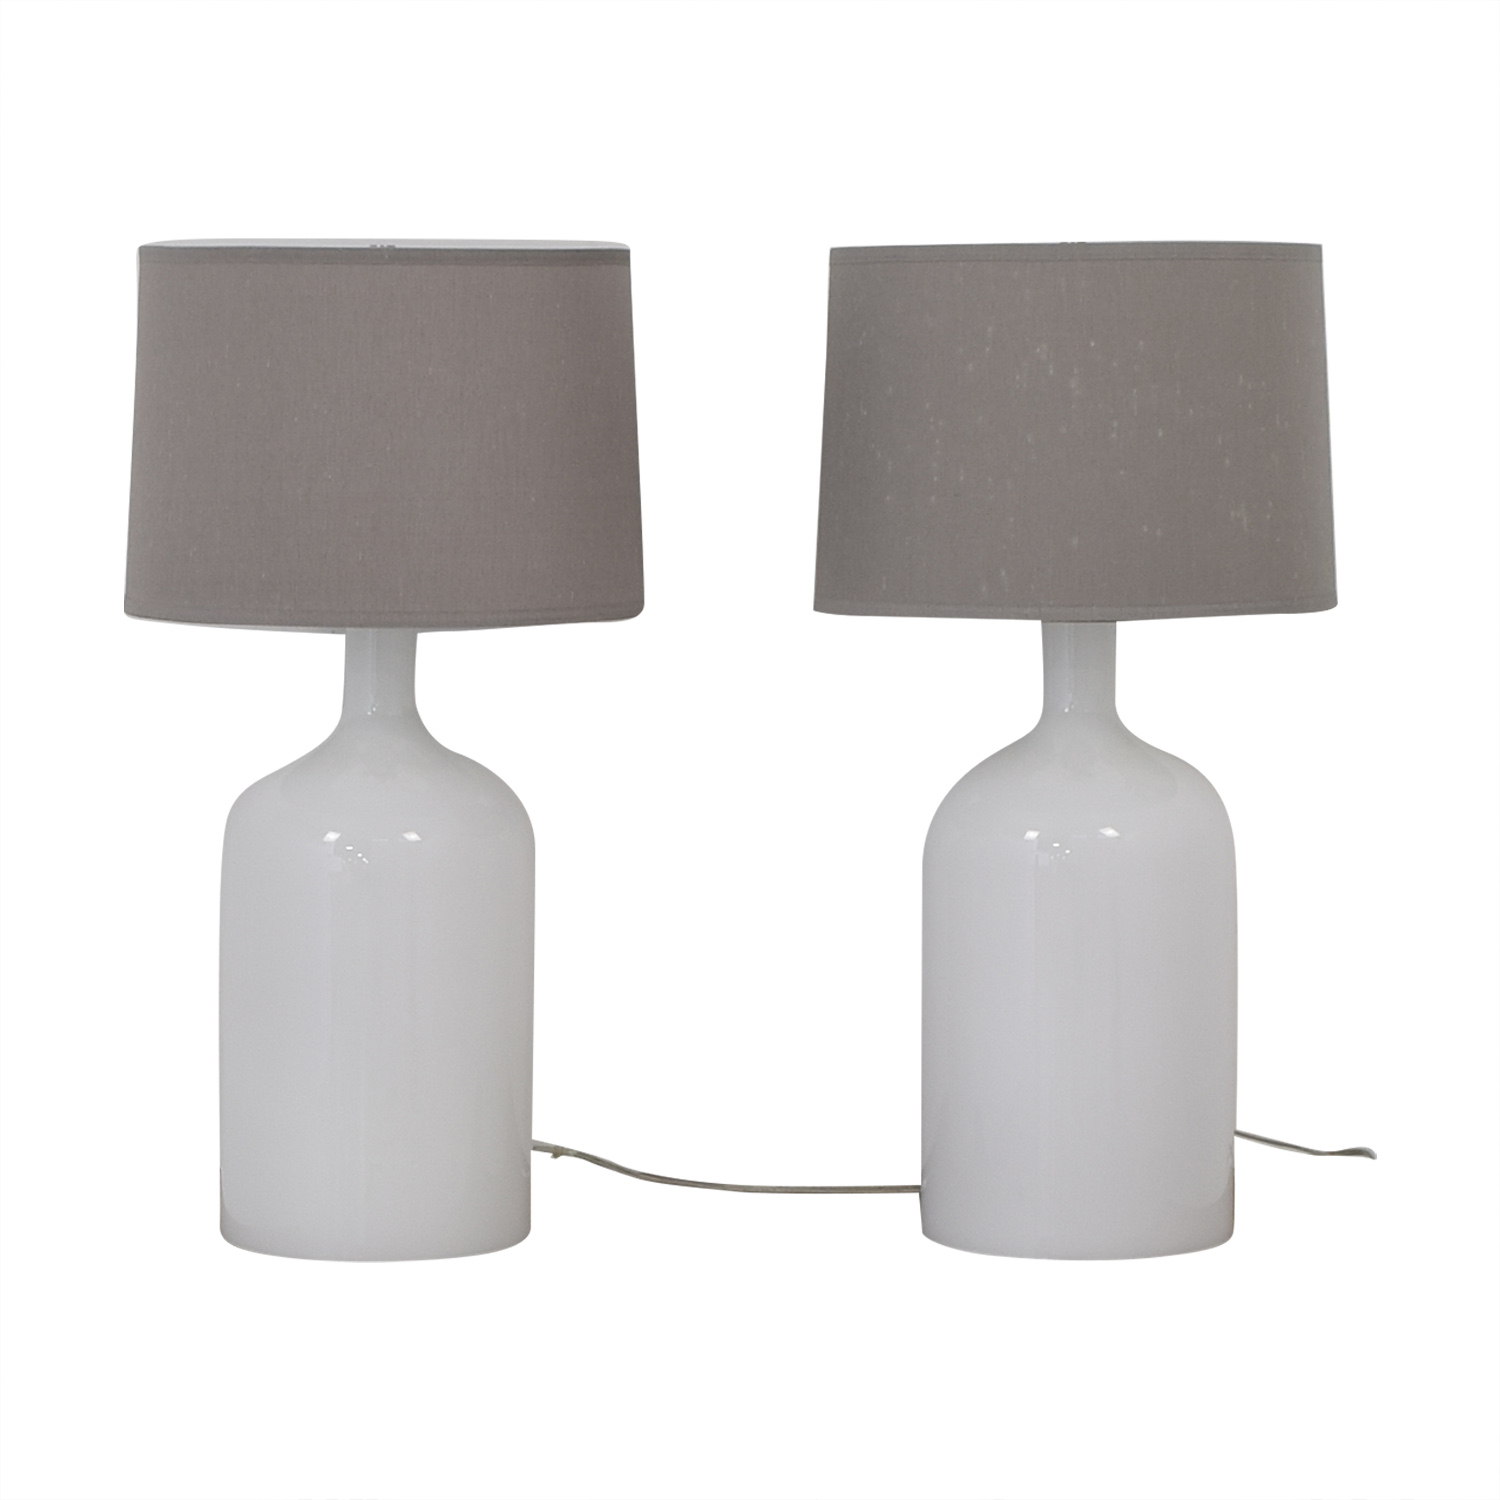 buy Crate & Barrel Della Table Lamps Crate & Barrel Lamps